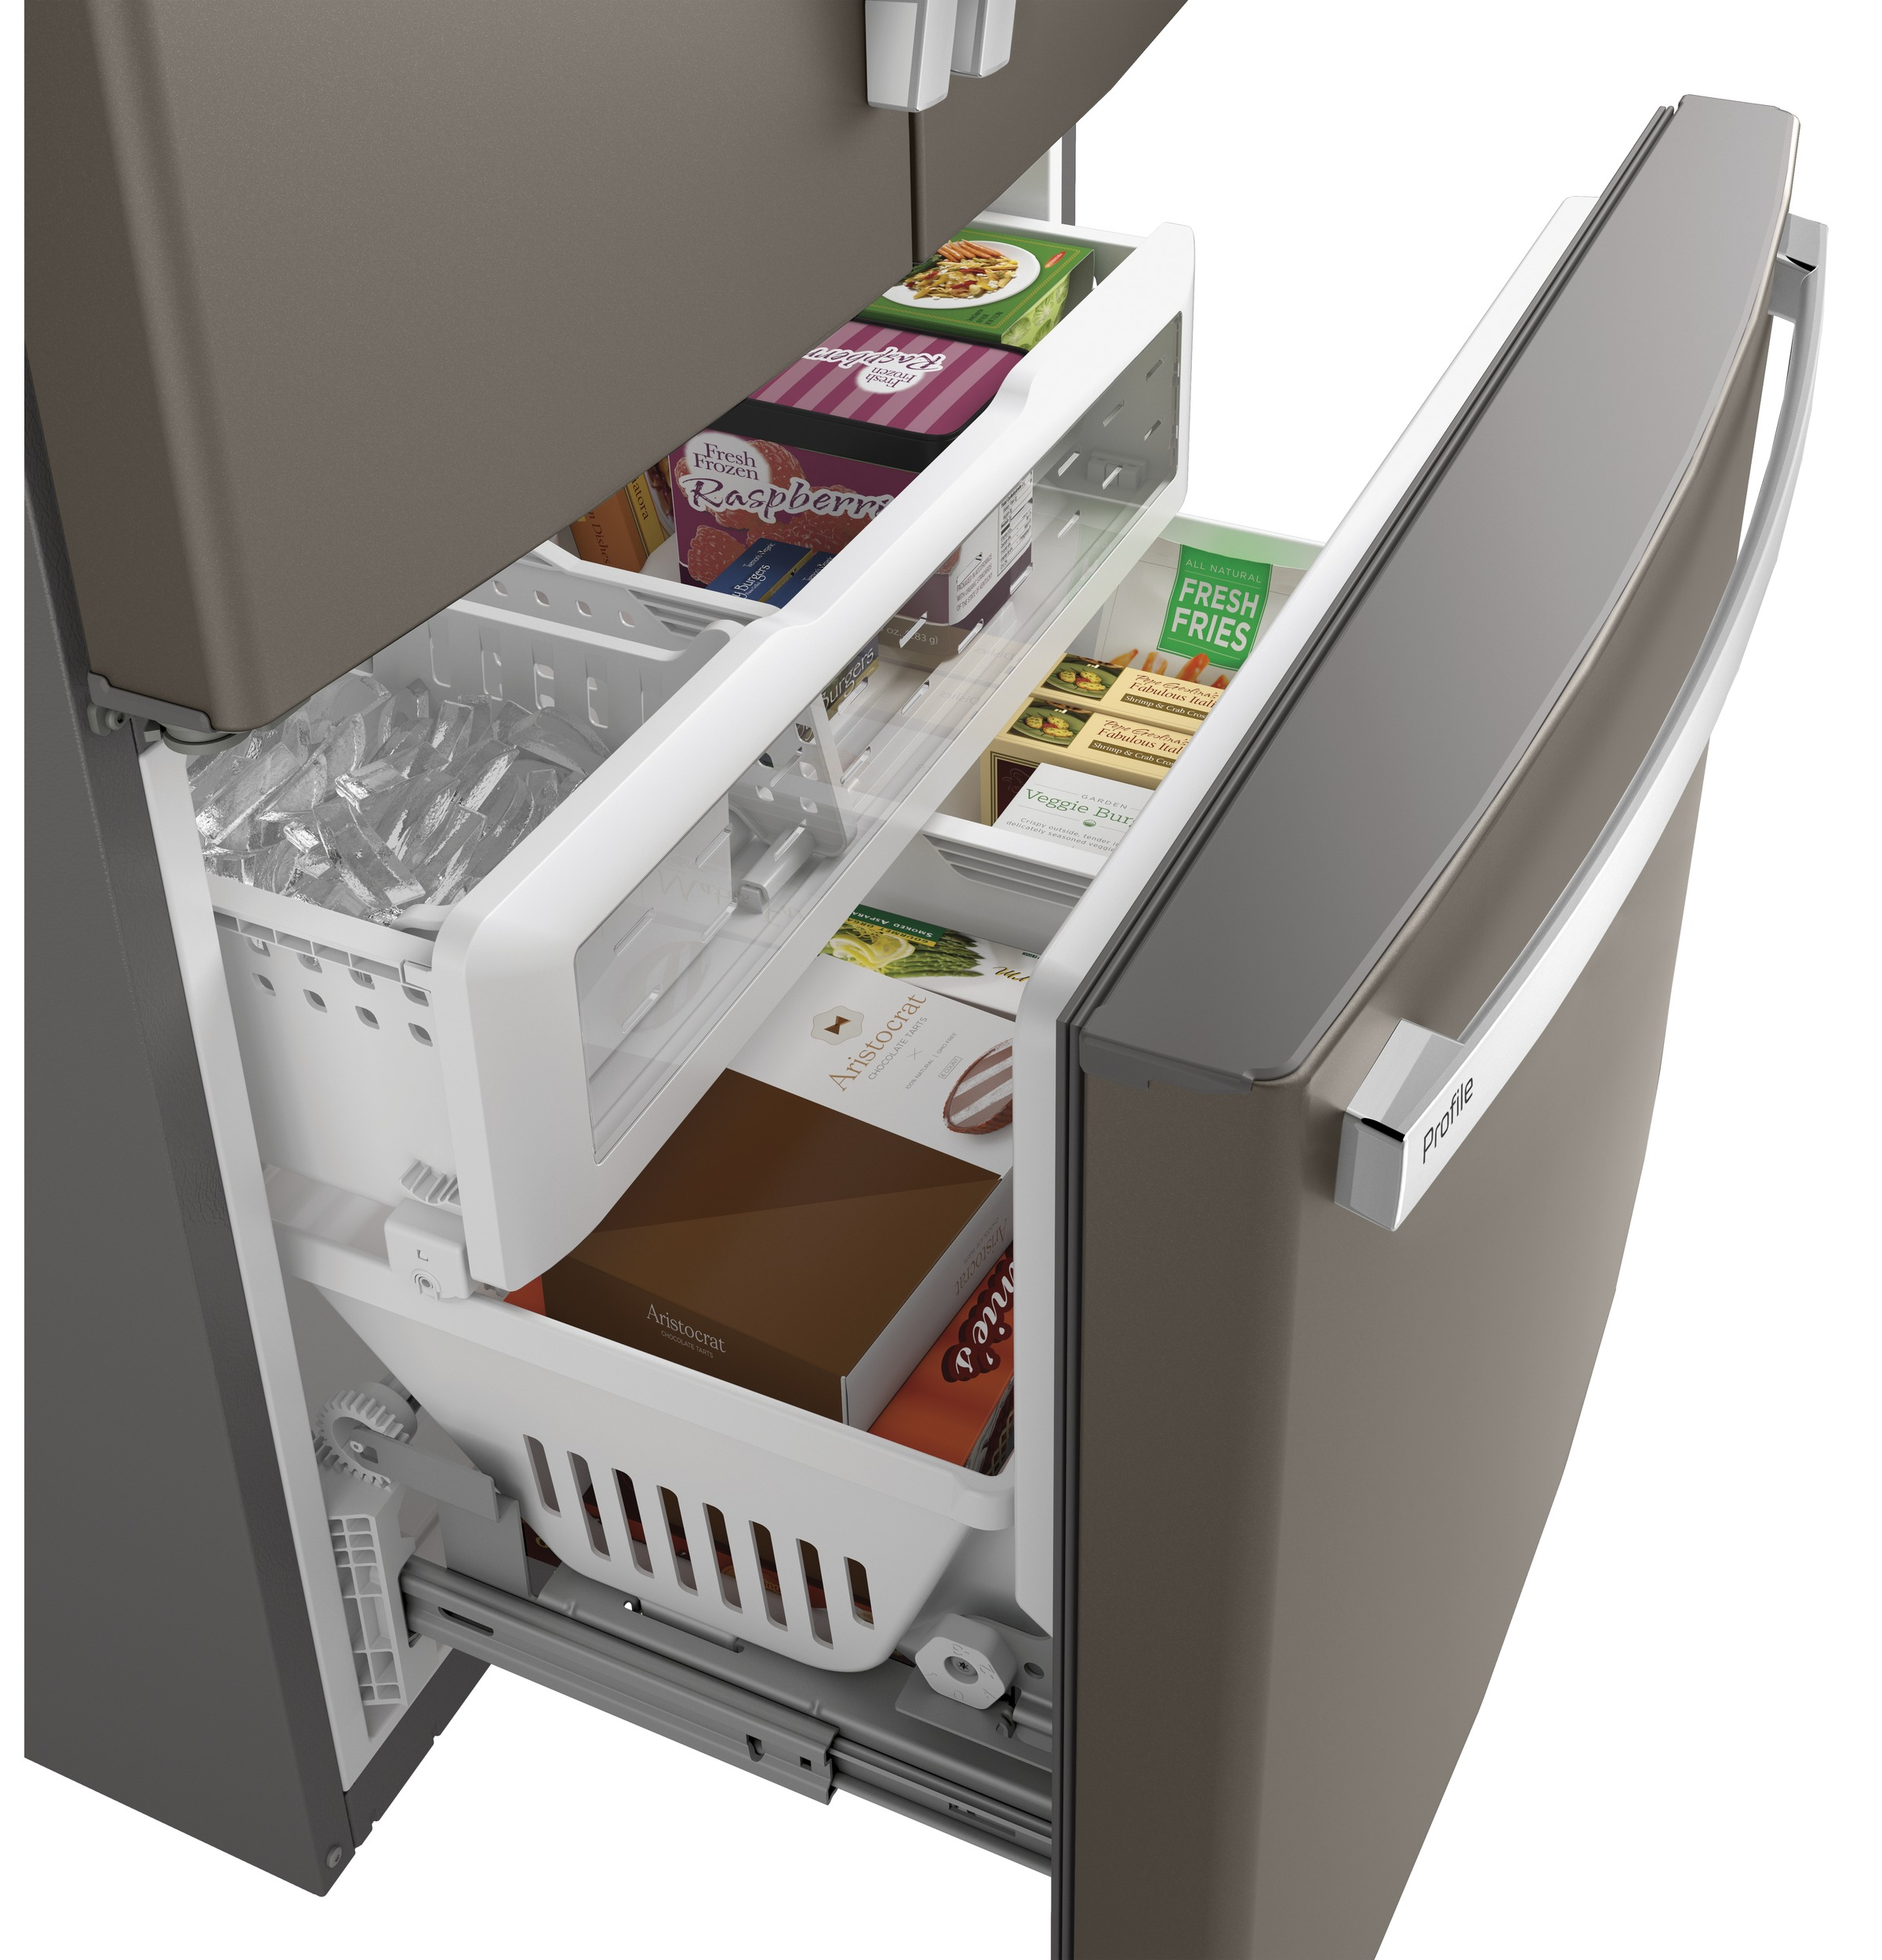 Model: PWE23KMKES | Profile GE Profile™ Series ENERGY STAR® 23.1 Cu. Ft. Counter-Depth French-Door Refrigerator